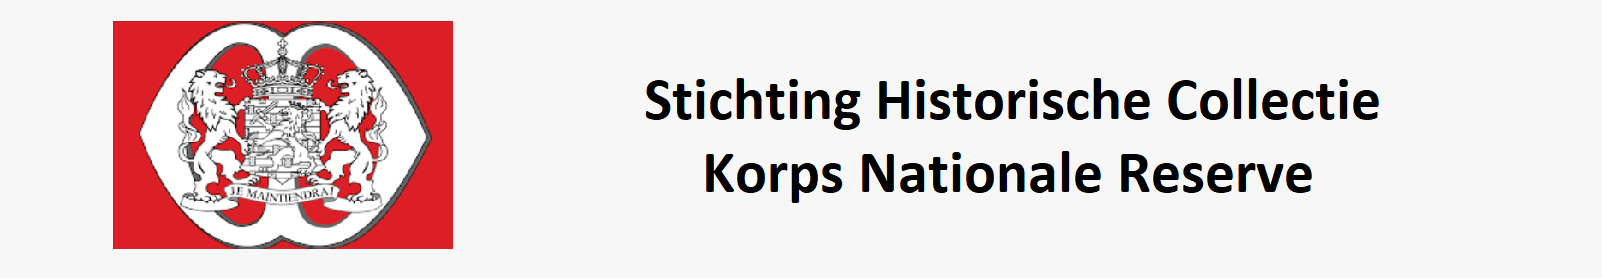 Stichting Historische Collectie Korps Nationale Reserve